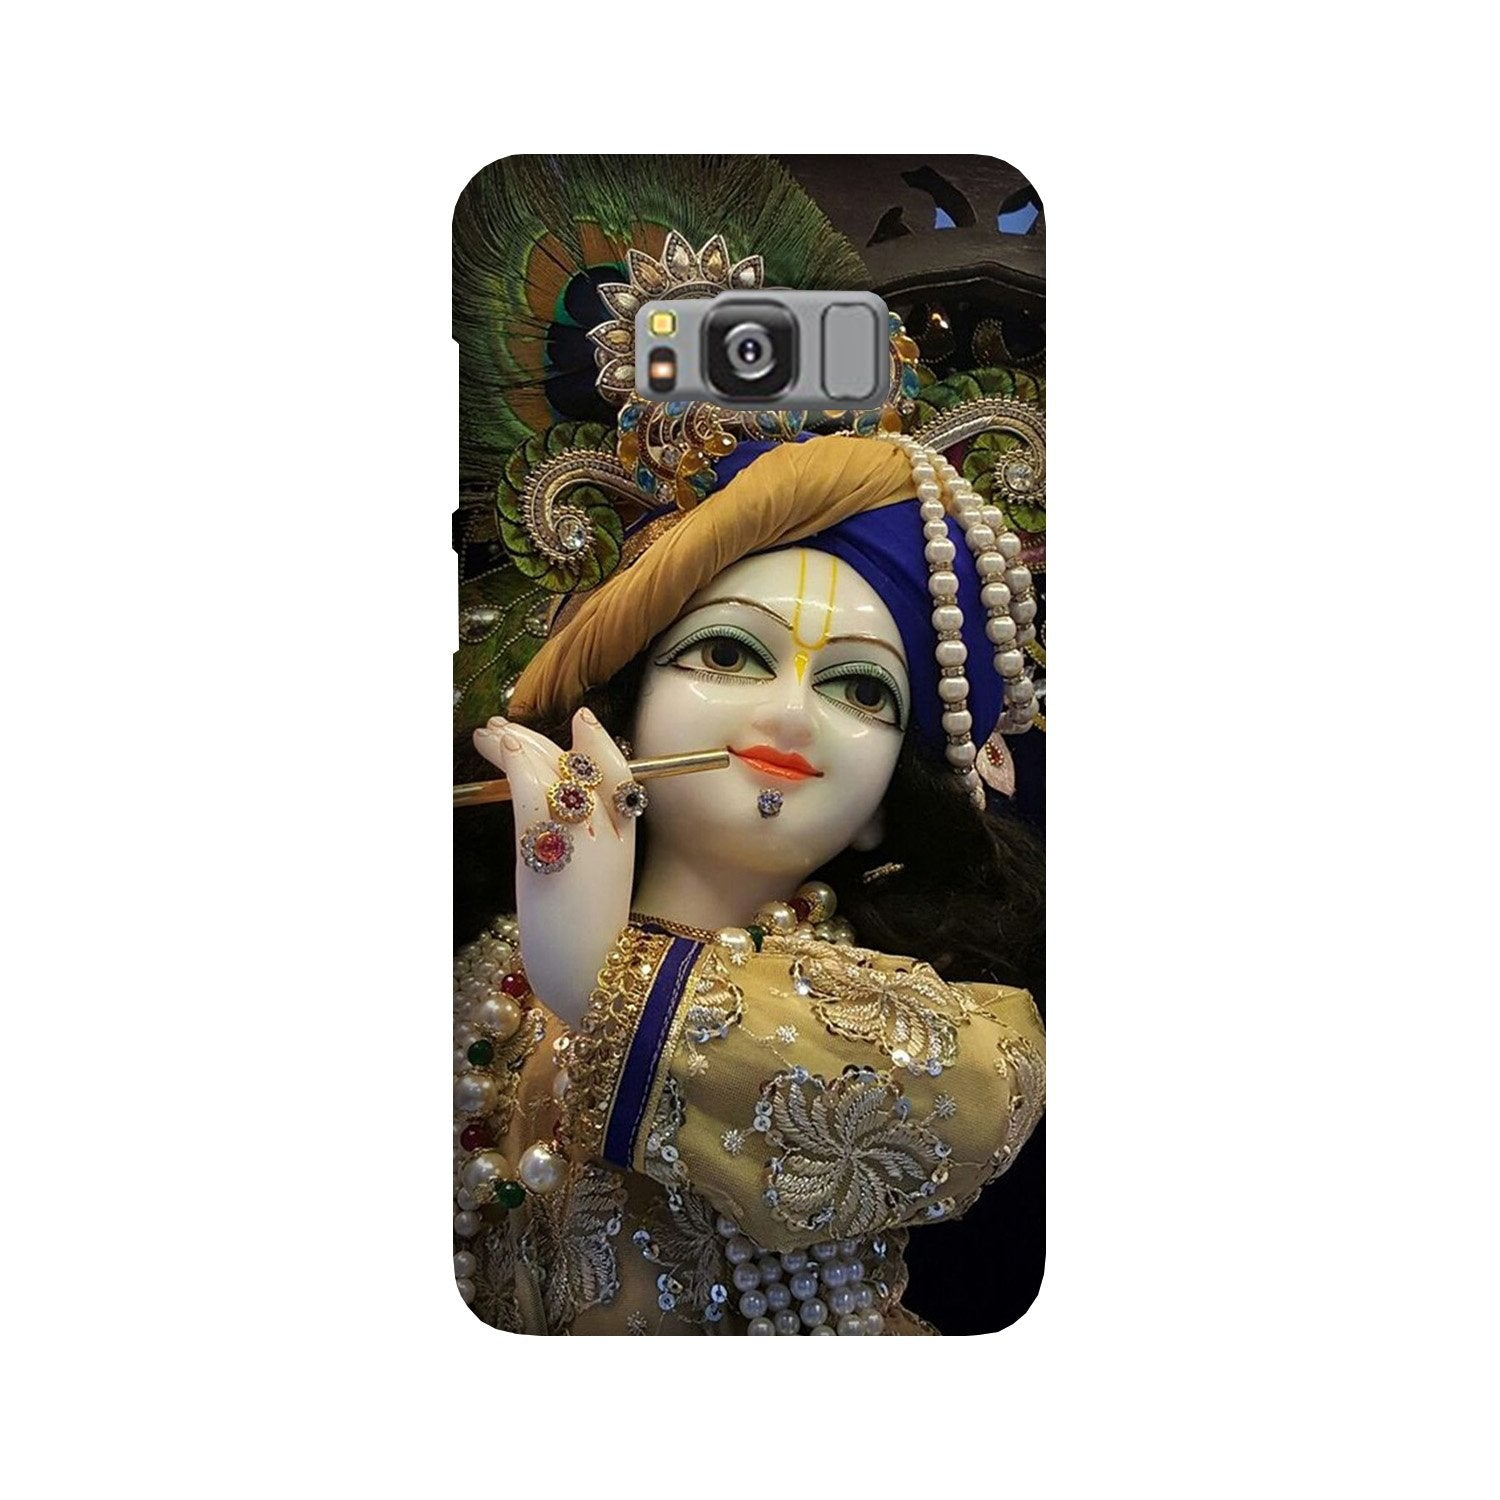 Lord Krishna3 Case for Galaxy S8